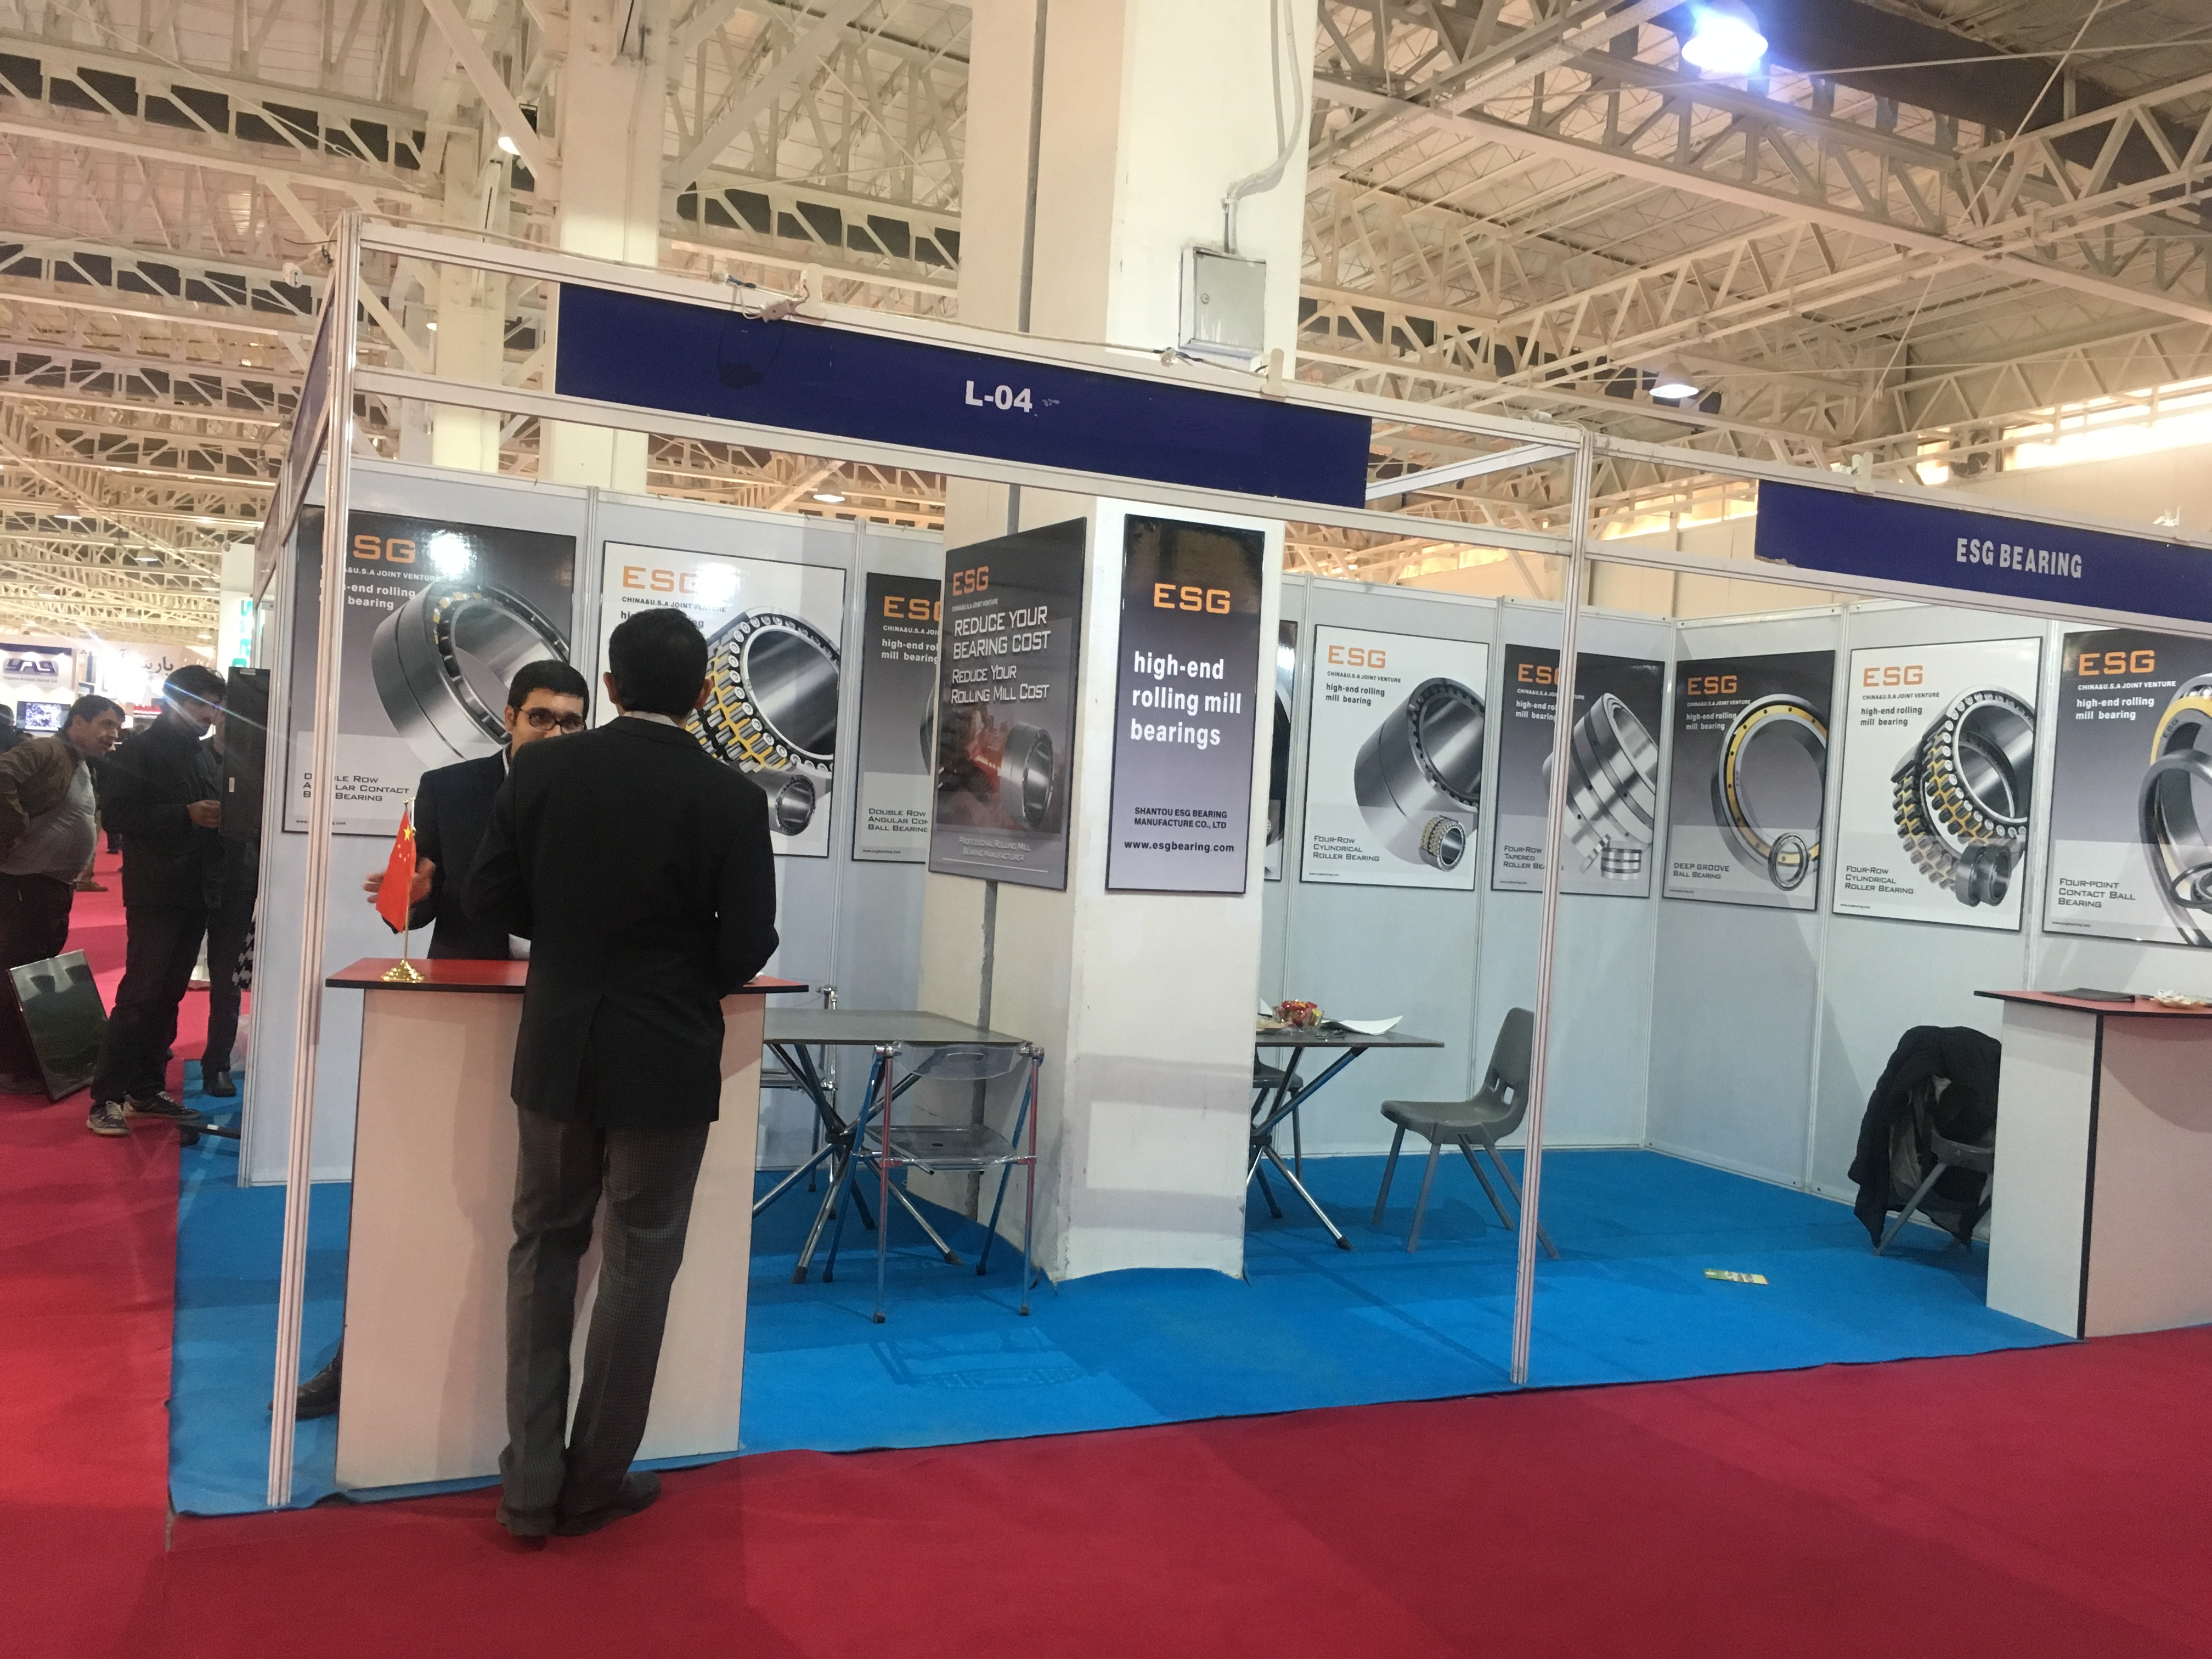 ESG Bearing Attended IRAN METAFO 2017